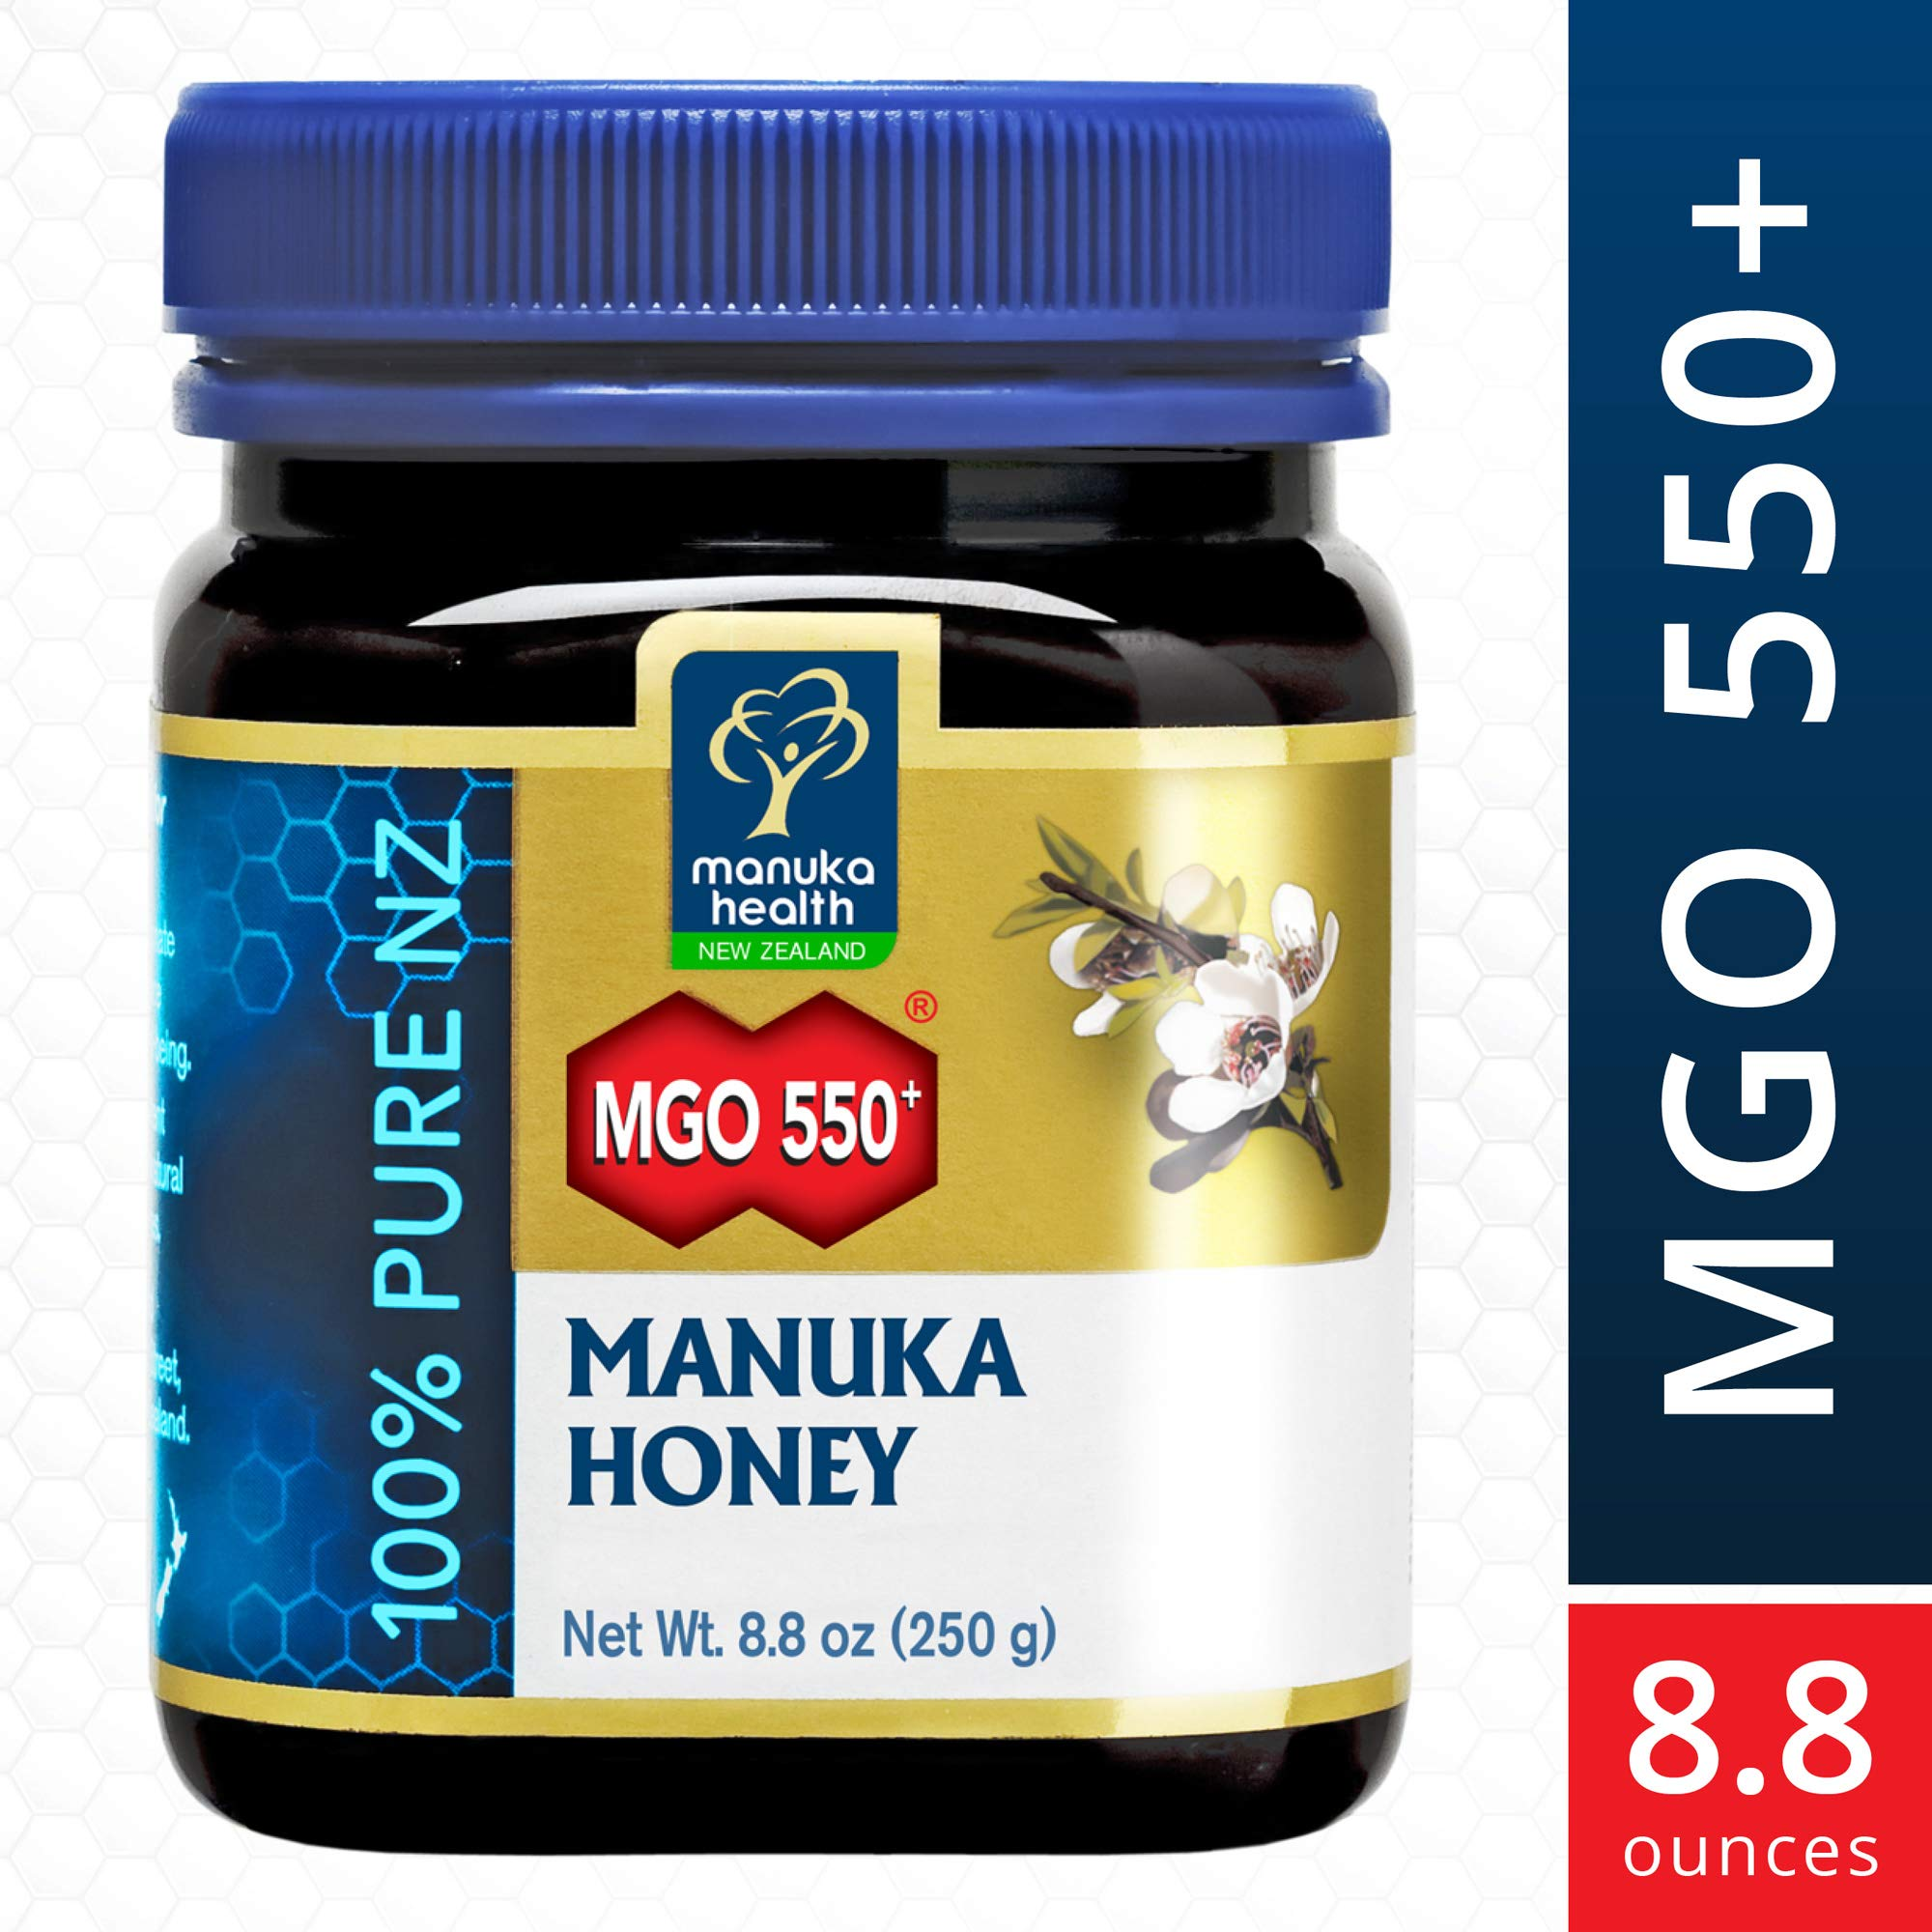 MANUKA HEALTH - MGO 550+ Manuka Honey, 100% Pure New Zealand Honey, 8.8 oz (250 g) (FFP)